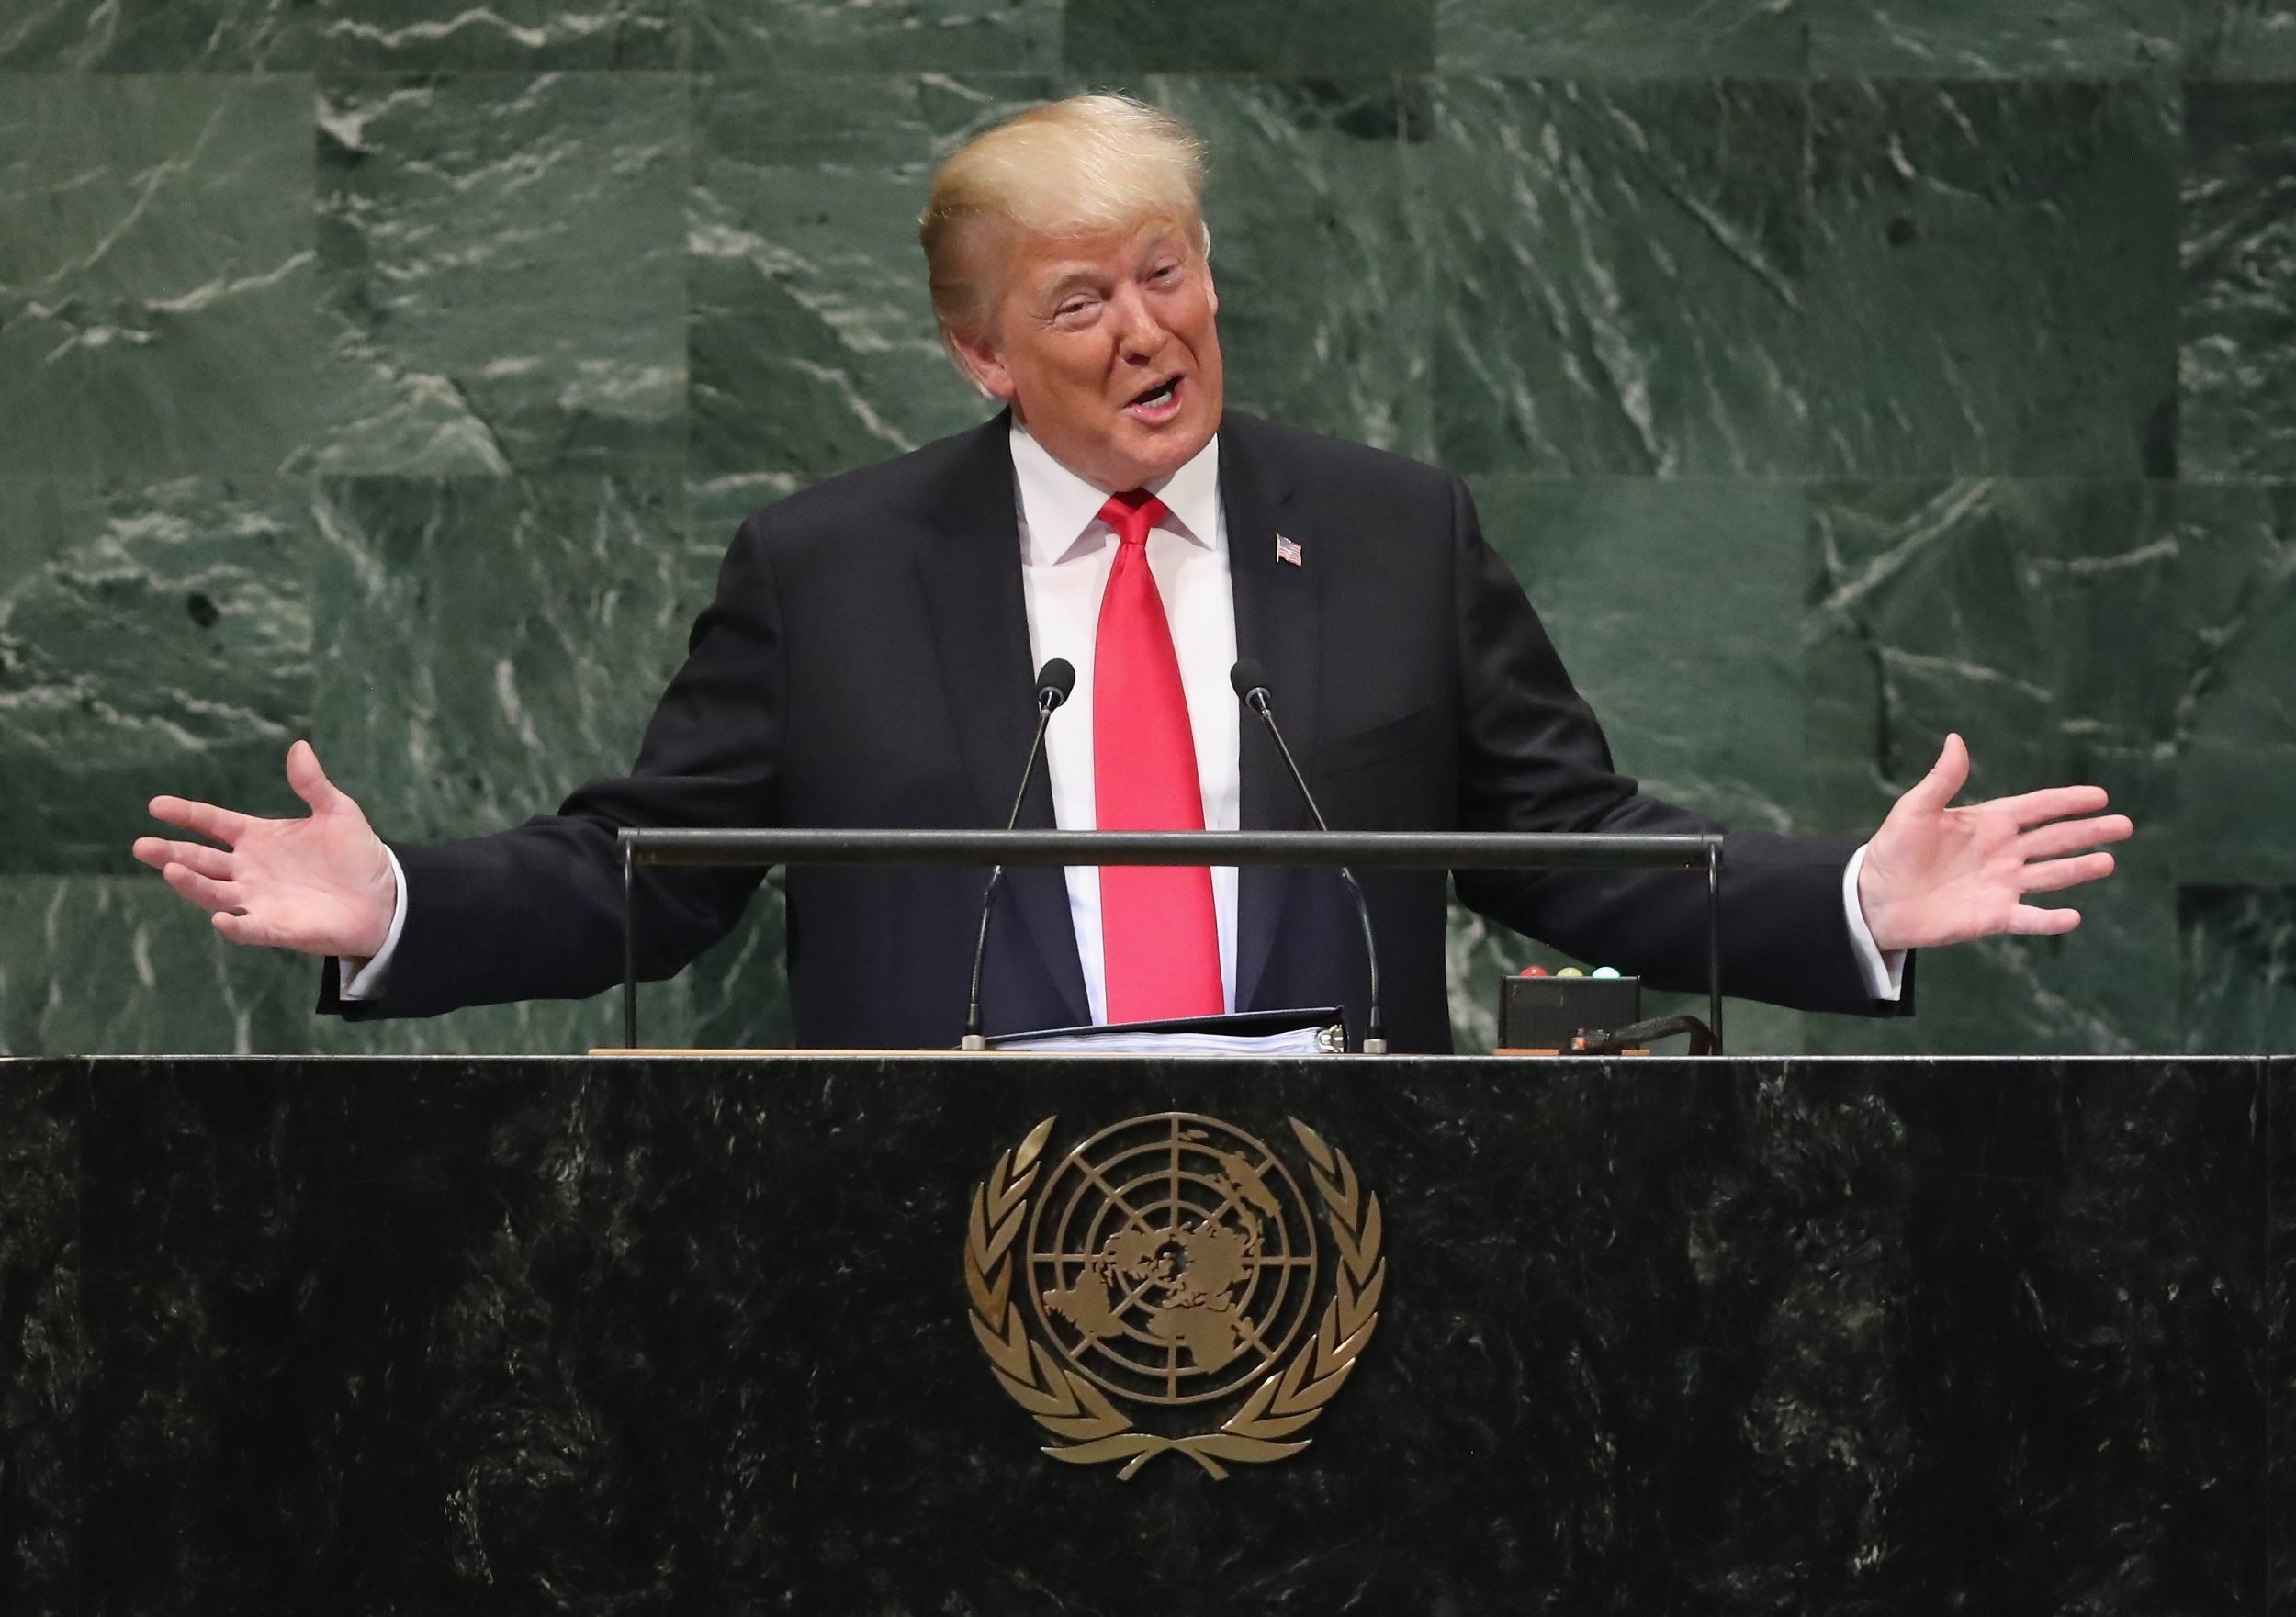 fox hosts trump not laughed united nations